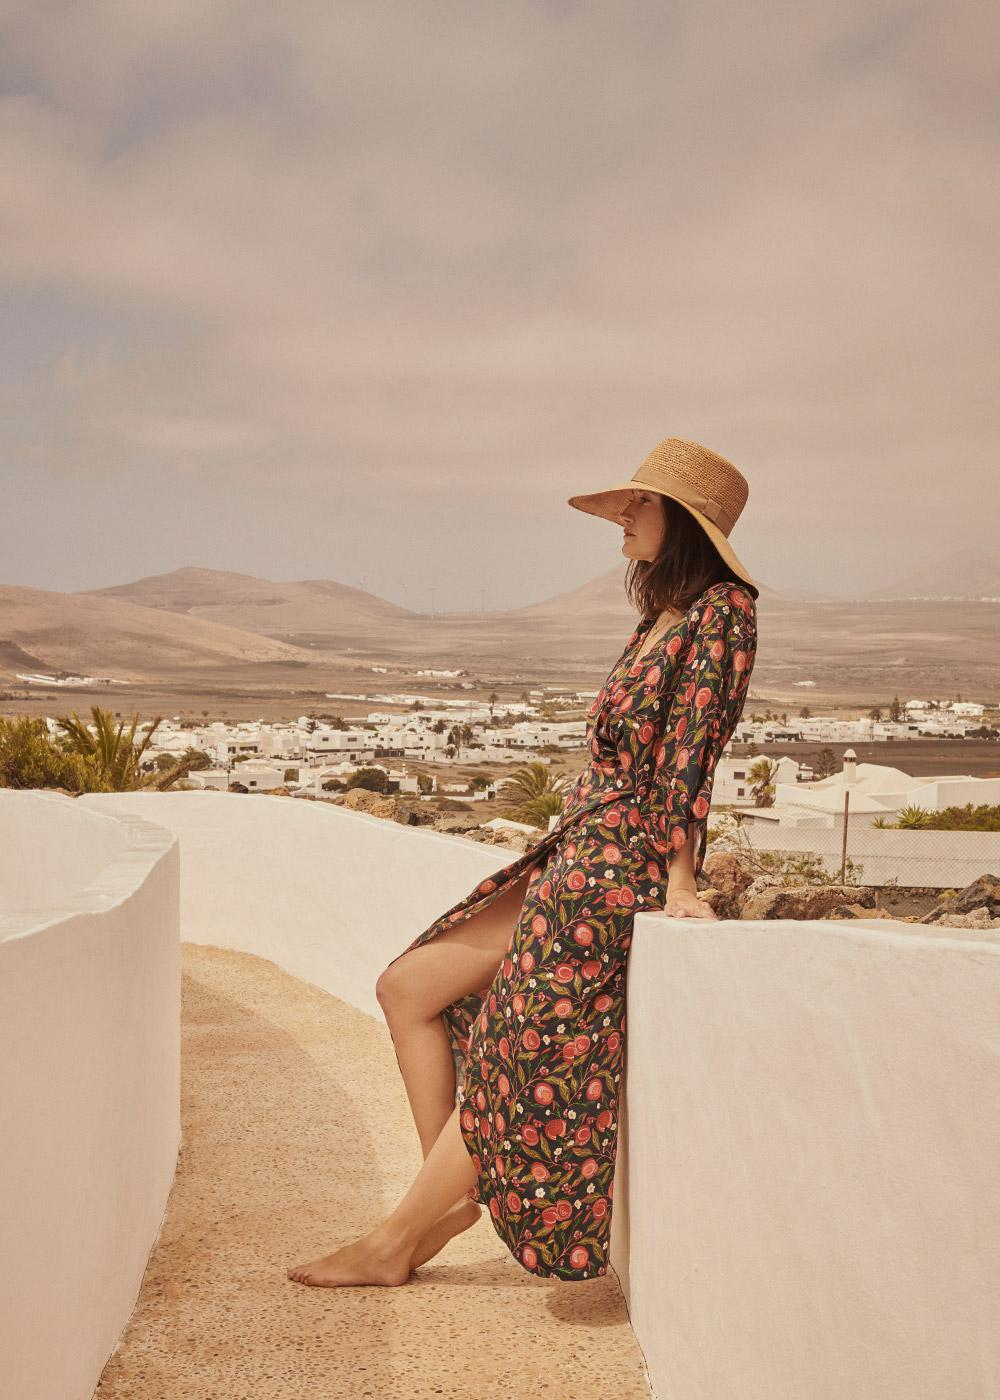 #LibertyCollective: Travel & Swim